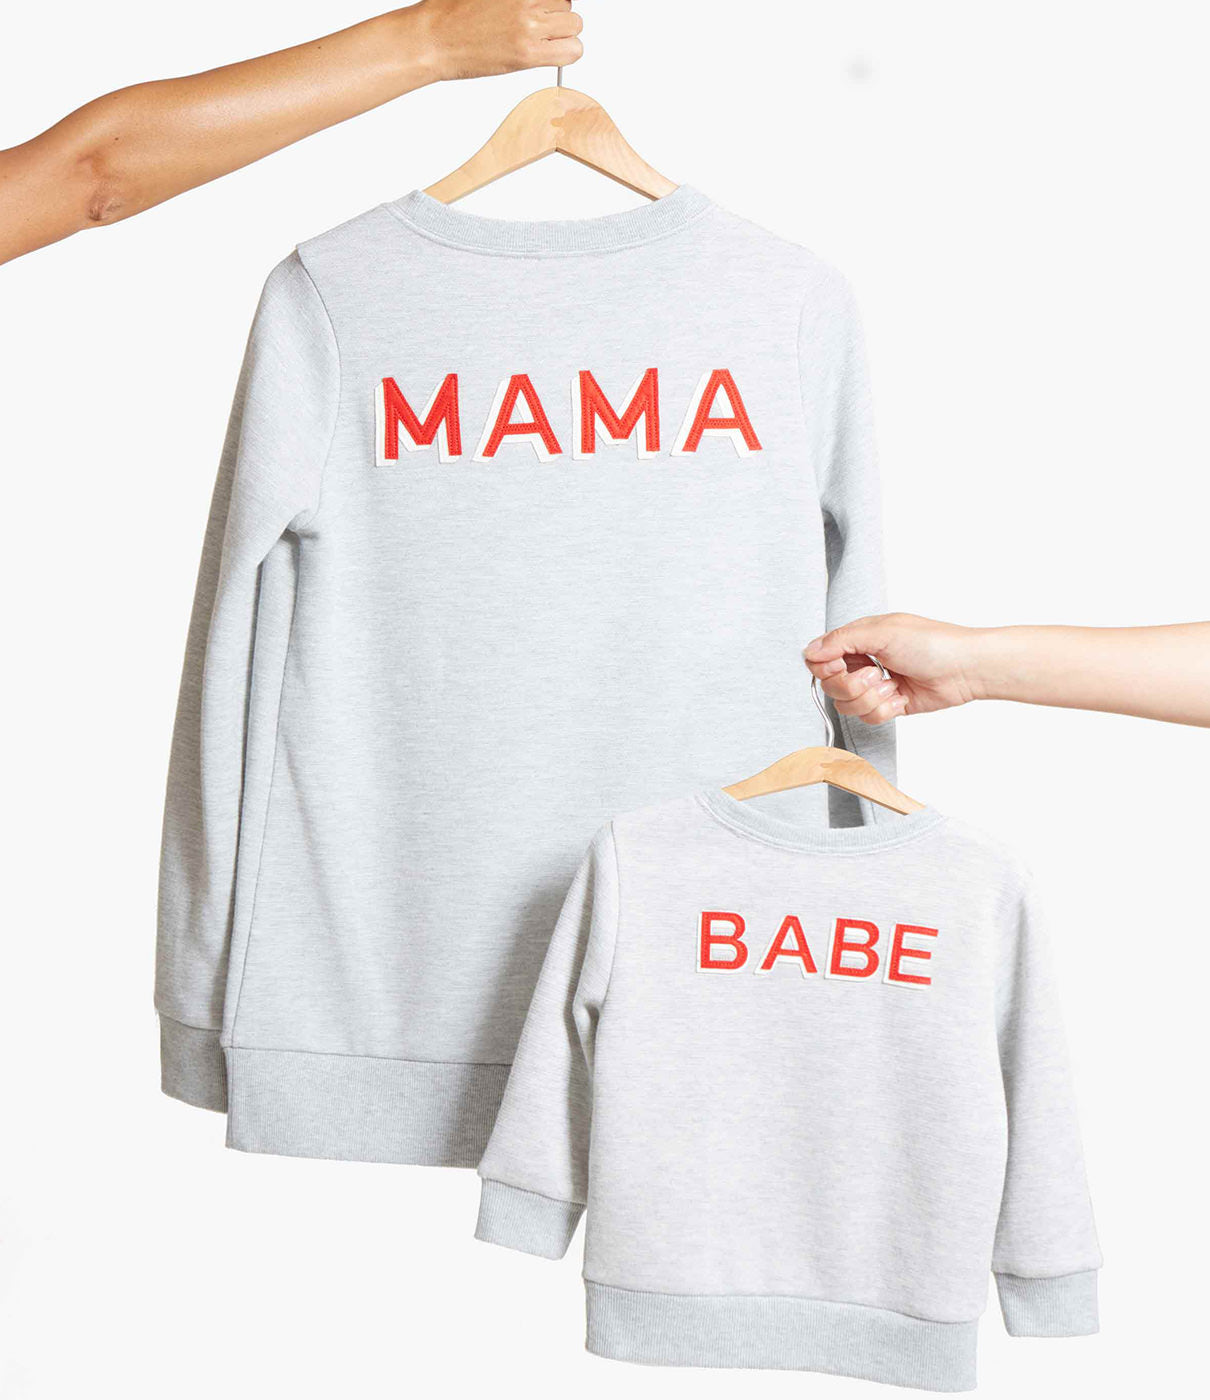 MAKE IT A PAIRCheck out the BABE sweatshirt for an adorable mommy-and-me look.